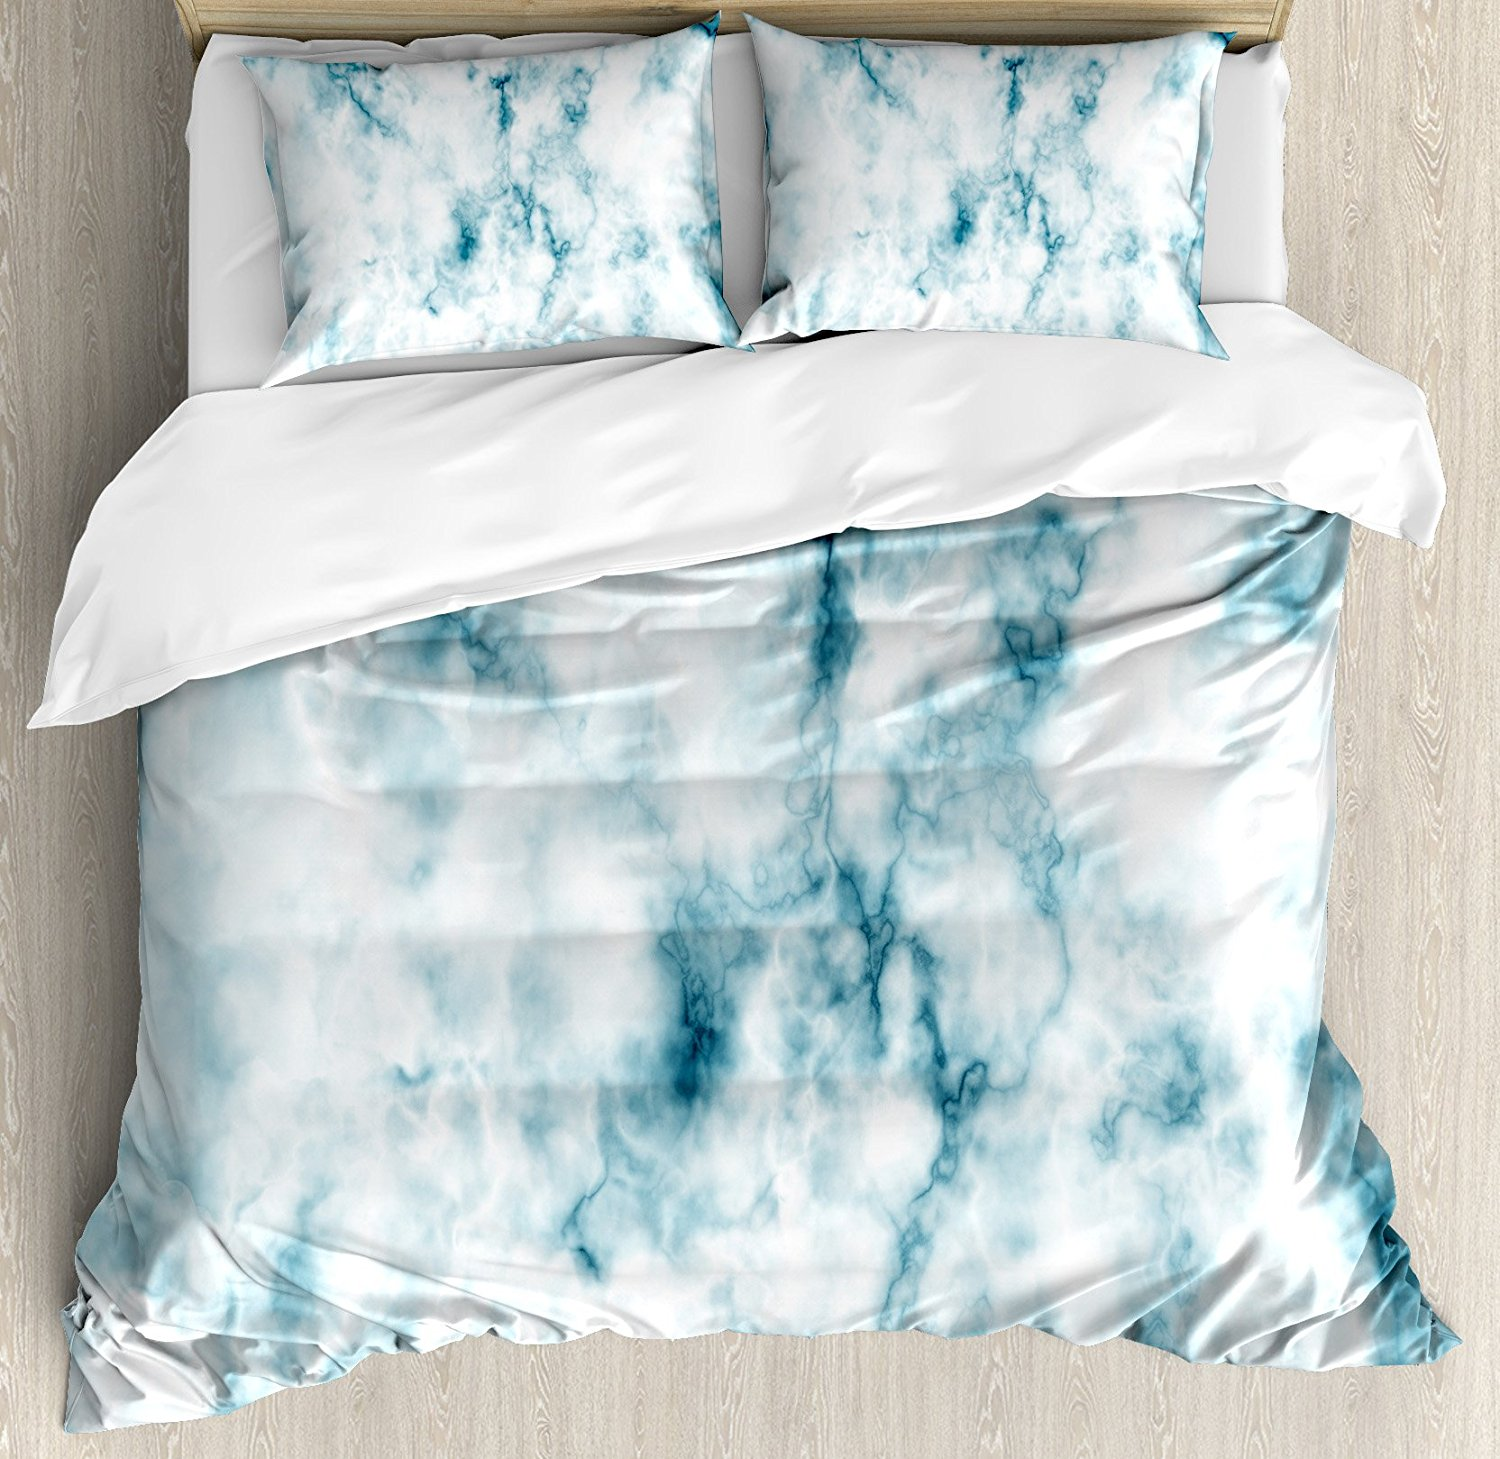 Nature Duvet Cover Set Fluffy Cloud Skyline Like Marble Motif With Grunge  And Retro Features Art Image Print 4 Piece In Bedding Sets From Home U0026  Garden On ...